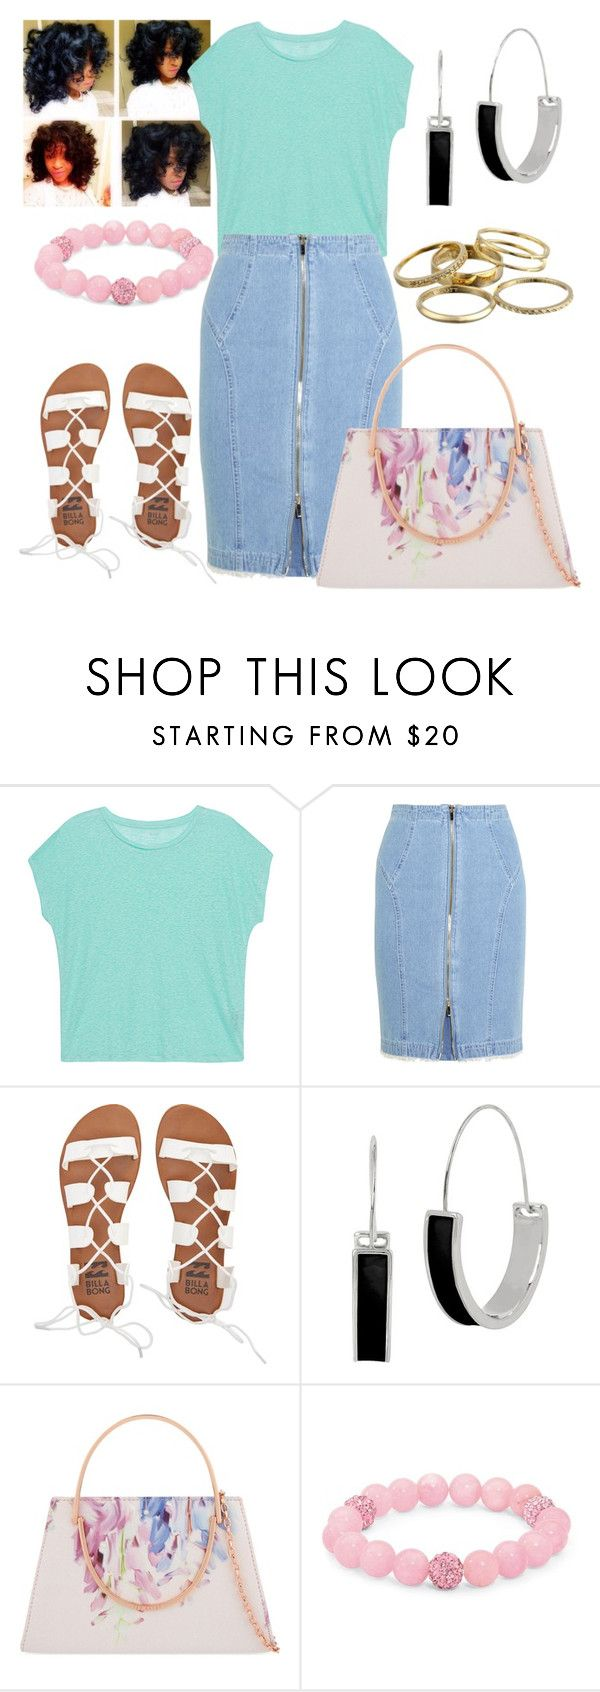 """Untitled #473"" by kyla-figgs ❤ liked on Polyvore featuring Majestic Filatures, Steve J & Yoni P, Billabong, Kenneth Cole, Ted Baker, Palm Beach Jewelry and Kendra Scott"